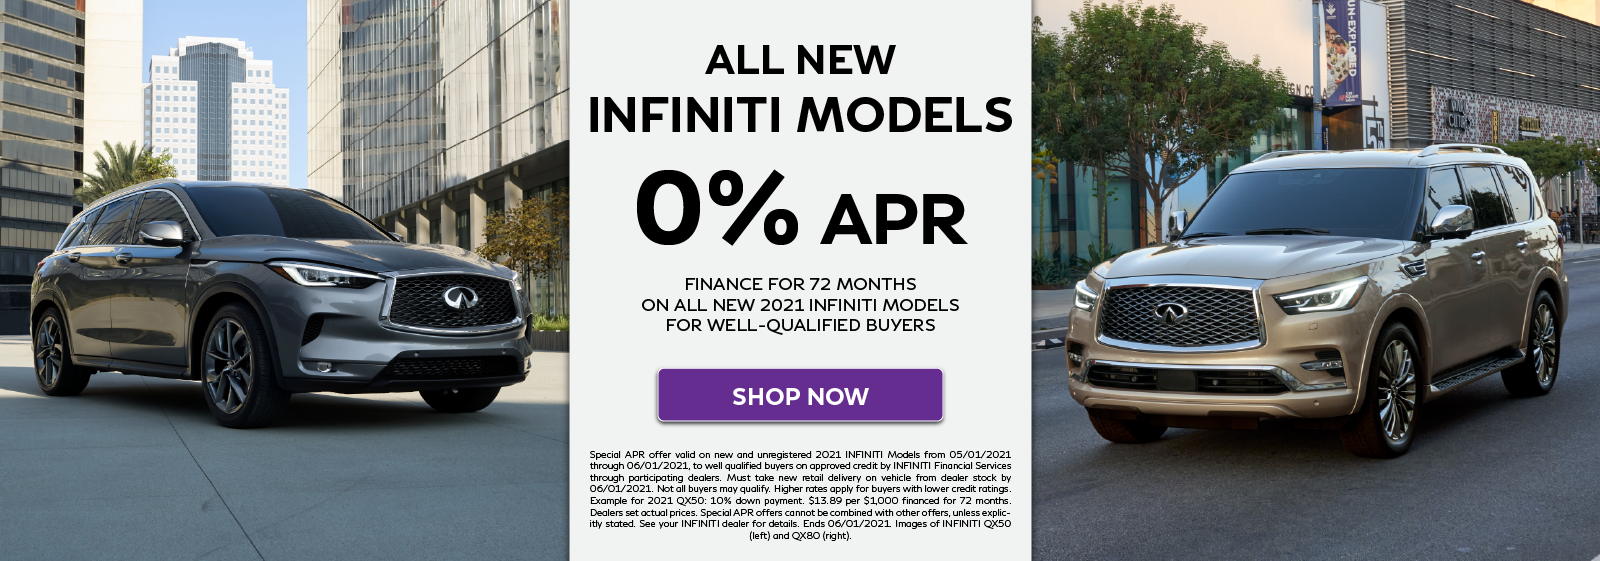 All New 2021 INFINITI Models 0% APR offer. Click to shop now.